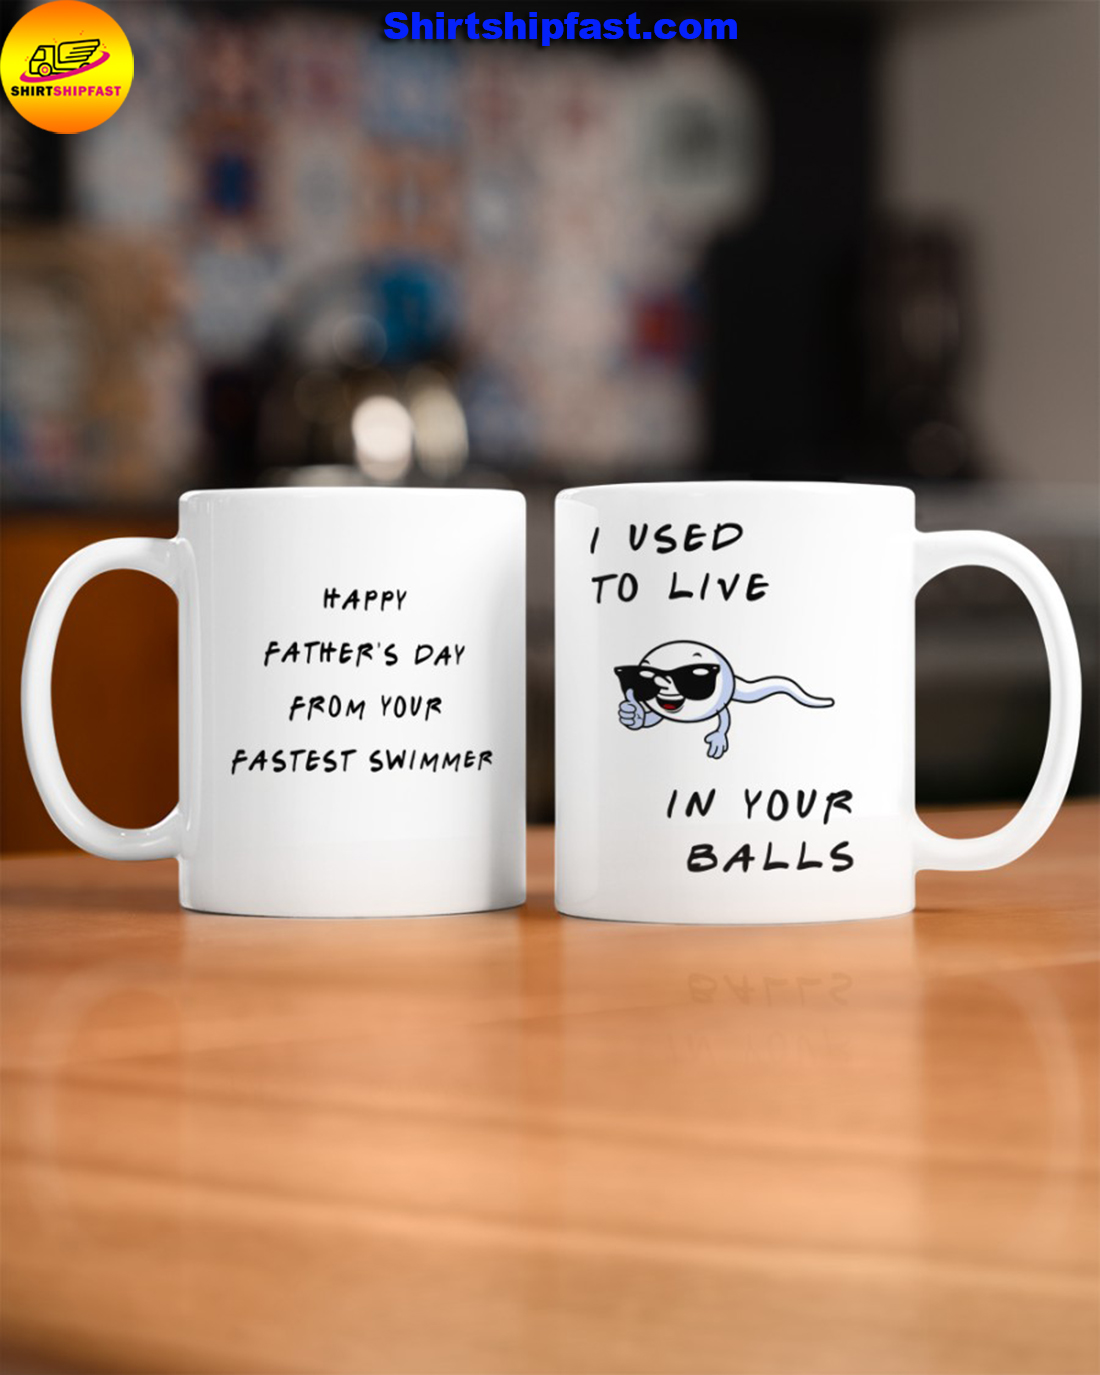 I used to live in your balls Happy father's day from your fastest swimmer mug